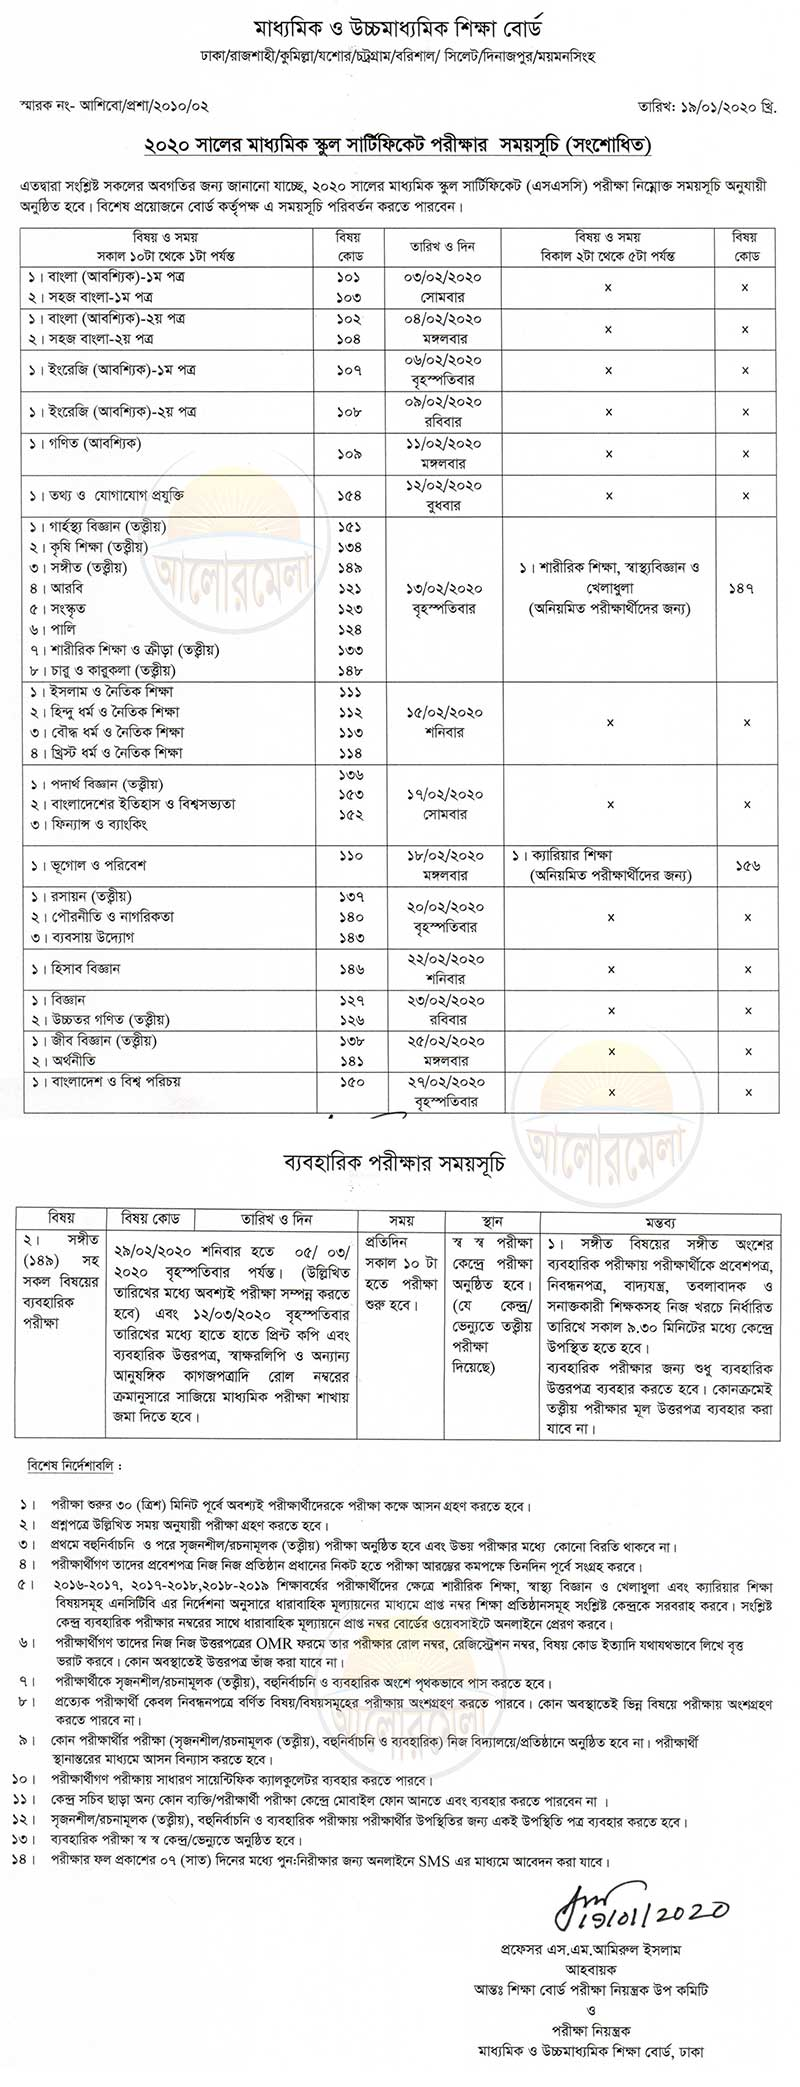 SSC Exam Routine 2020 New and Updated